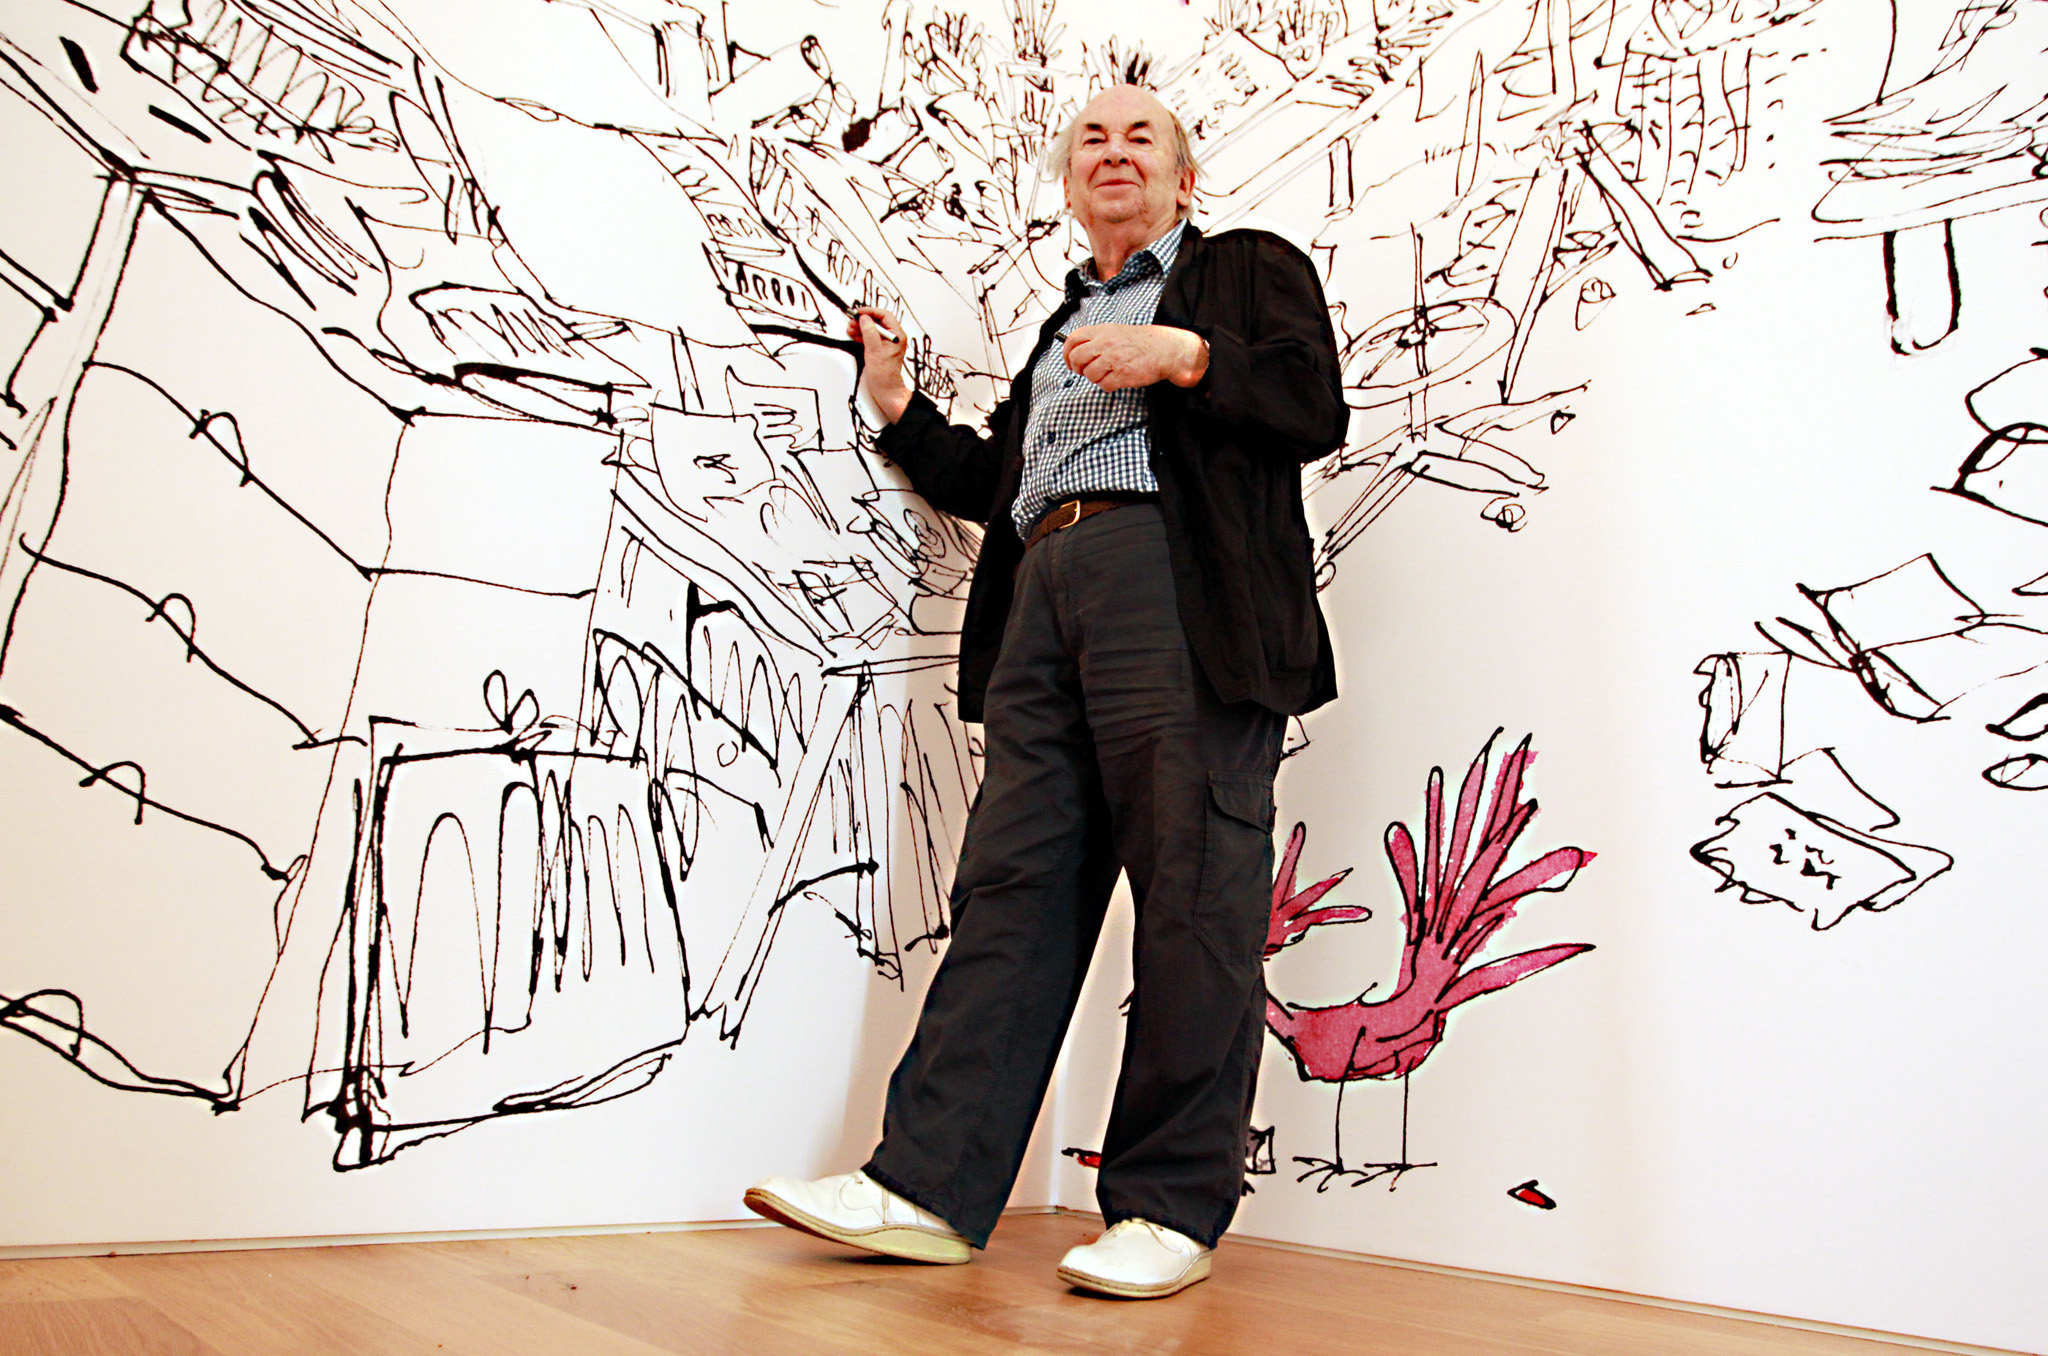 Quentin Blake exhibition - London...Quentin Blake poses with some of his illustrations at the world's first public gallery and education space dedicated to illustration the 'House of Illustration' in the heart of King's Cross, which is to open on 2nd July with a exhibition of Blake's work called Inside Stories. PRESS ASSOCIATION Photo. Picture date: Tuesday July 1, 2014. Photo credit should read: Sean Dempsey/PA Wire